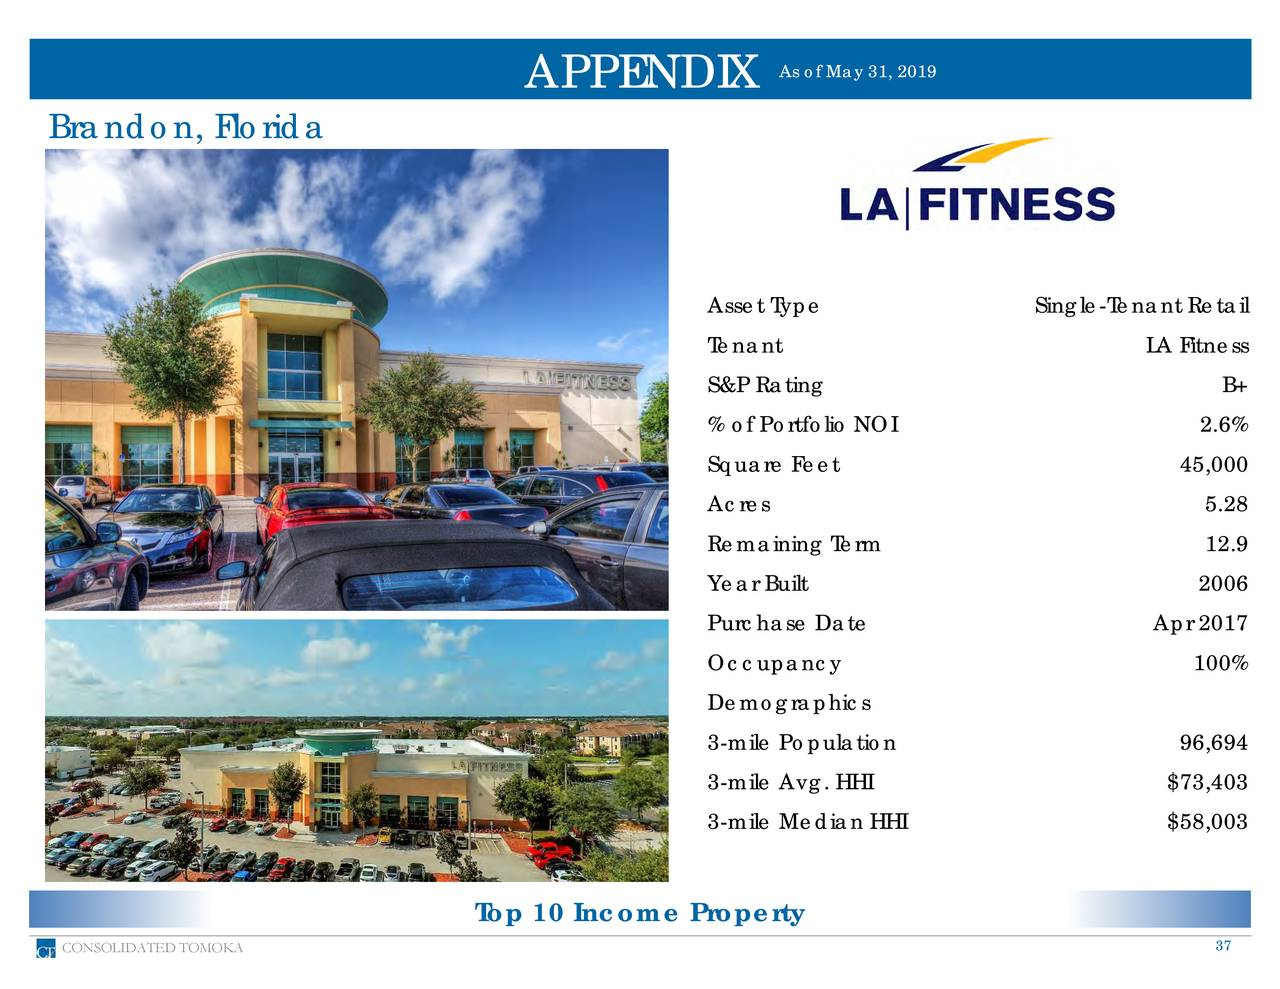 APPENDIX Brandon, Florida Asset Type Single-Tenant Retail Tenant LA Fitness S&P Rating B+ % of Portfolio NOI 2.6% Square Feet 45,000 Acres 5.28 Remaining Term 12.9 Year Built 2006 Purchase Date Apr 2017 Occupancy 100% Demographics 3-mile Population 96,694 3-mile Avg. HHI $73,403 3-mile Median HHI $58,003 Top 10 Income Property CONSOLIDATED TOMOKA 37